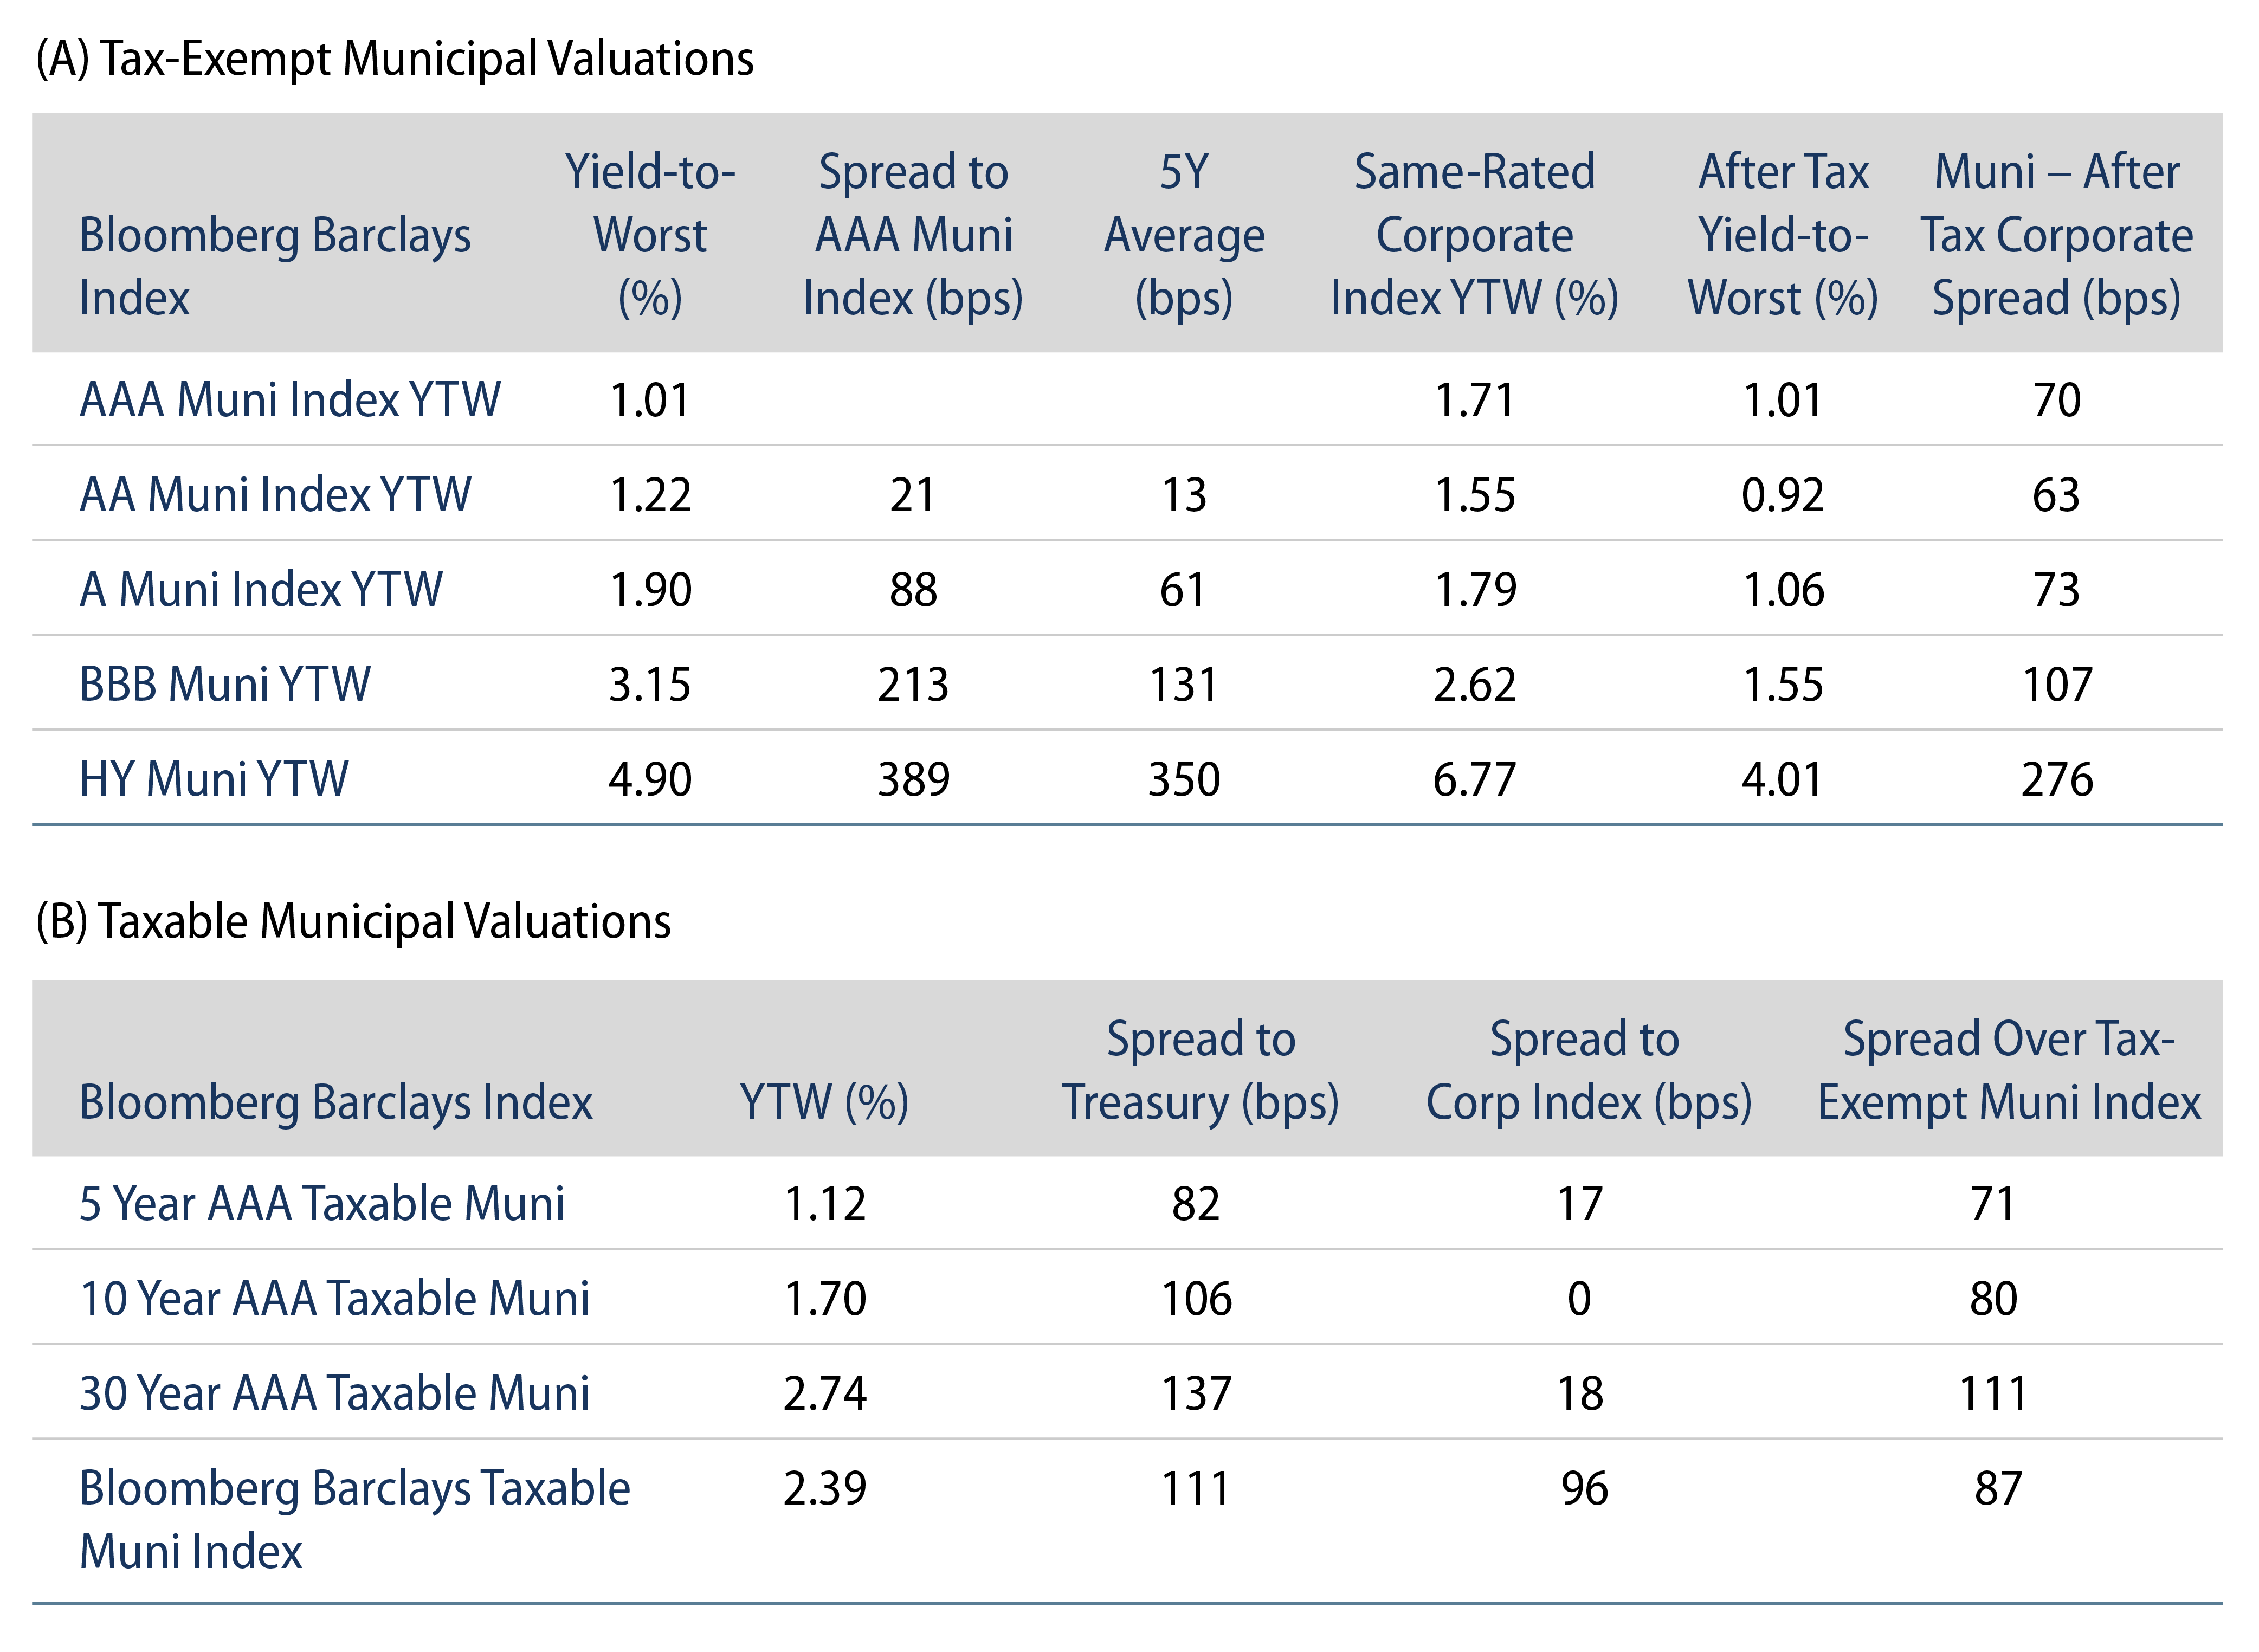 Explore Tax-Exempt and Taxable Municipal Valuations